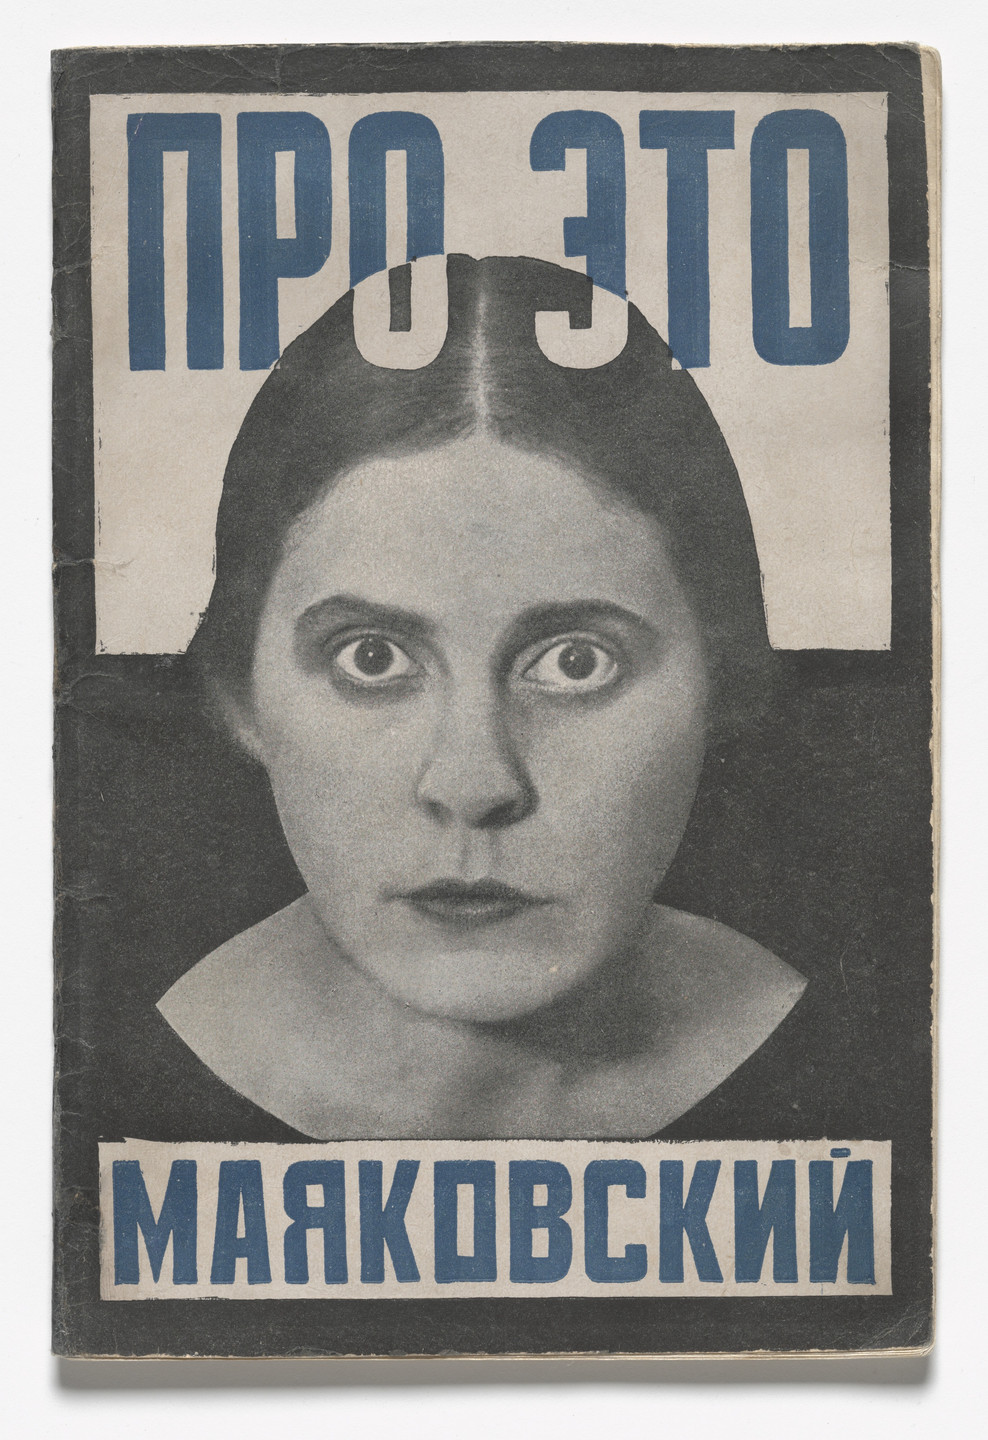 Aleksandr Rodchenko. Pro eto. Ei i mne (About This. To Her and to Me). 1923